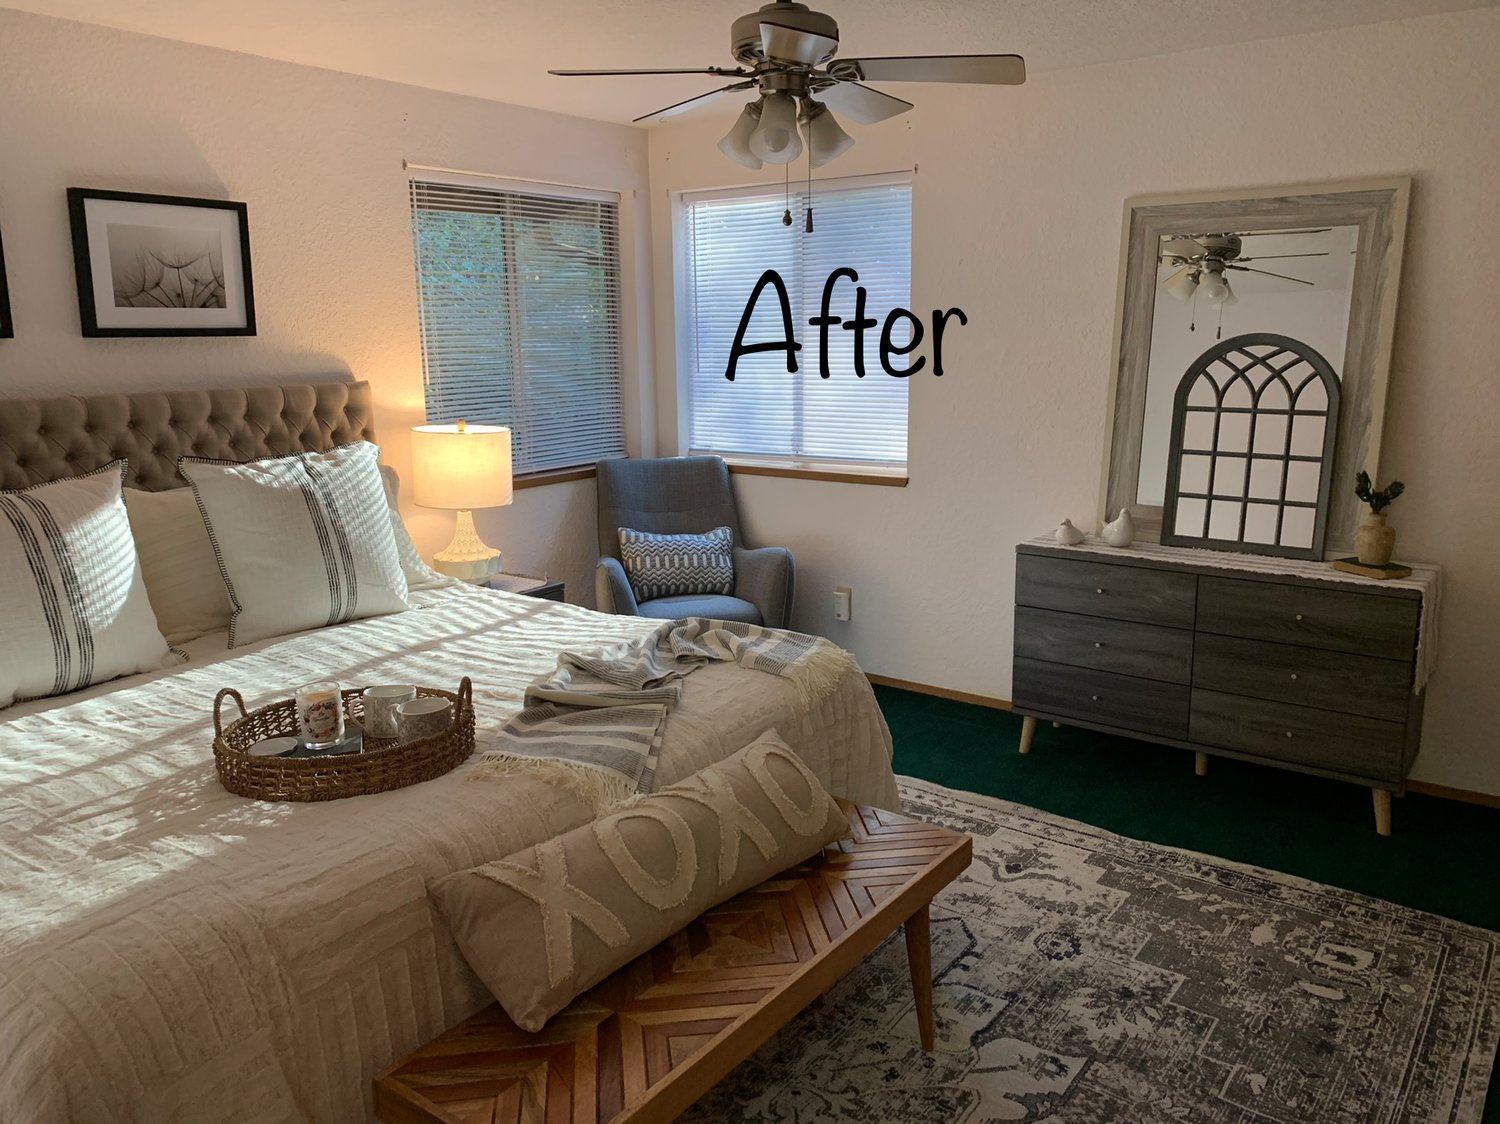 AFTER: The same bedroom, with staging furniture installed prior to showing of the house. Note the area rug on top of the dark wall-to-wall carpeting.